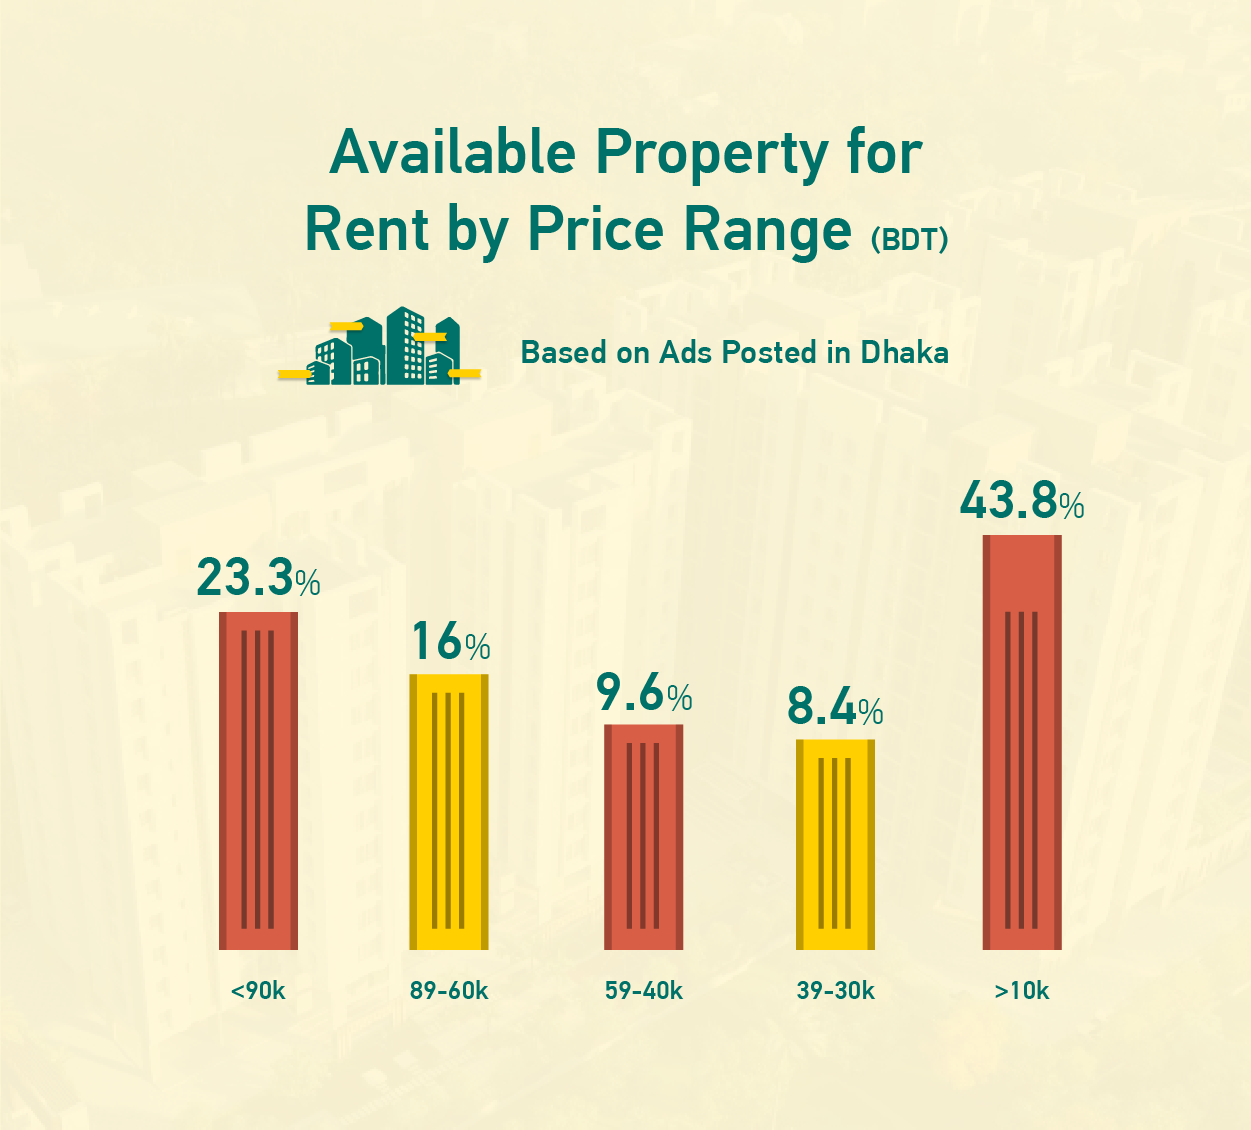 Available Property for Rent by Price Range